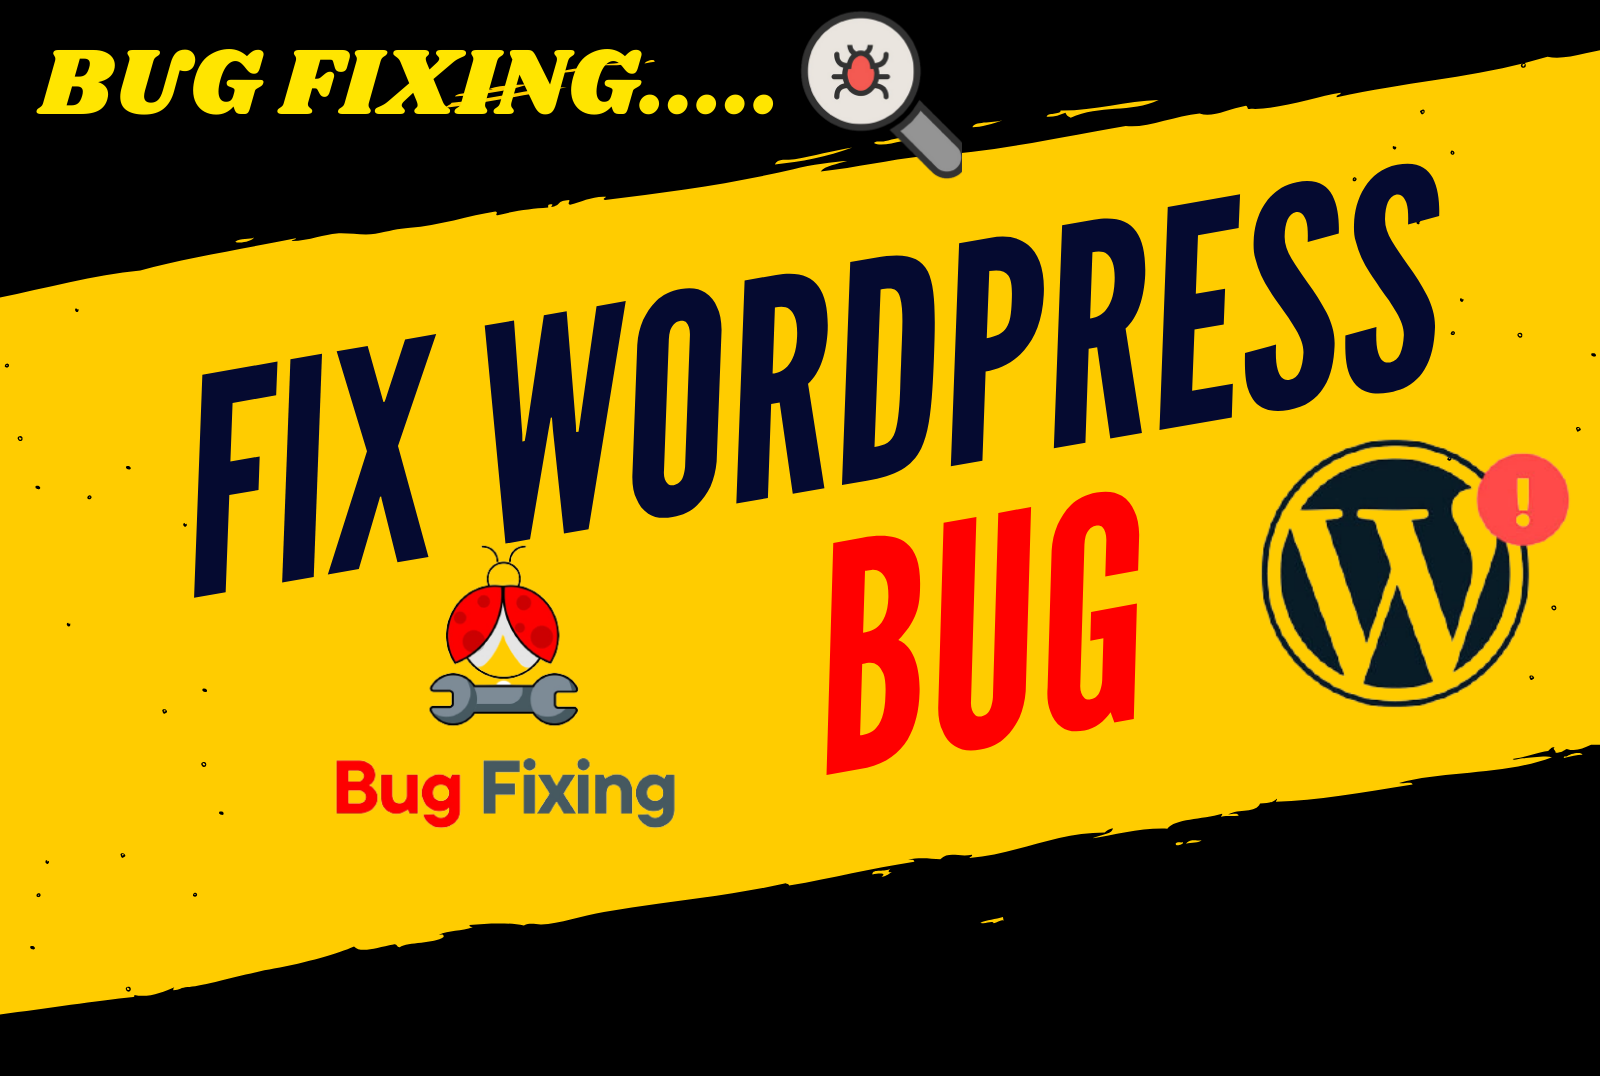 I will fix any wordpress bug,  issues,  or errors in 24 hours